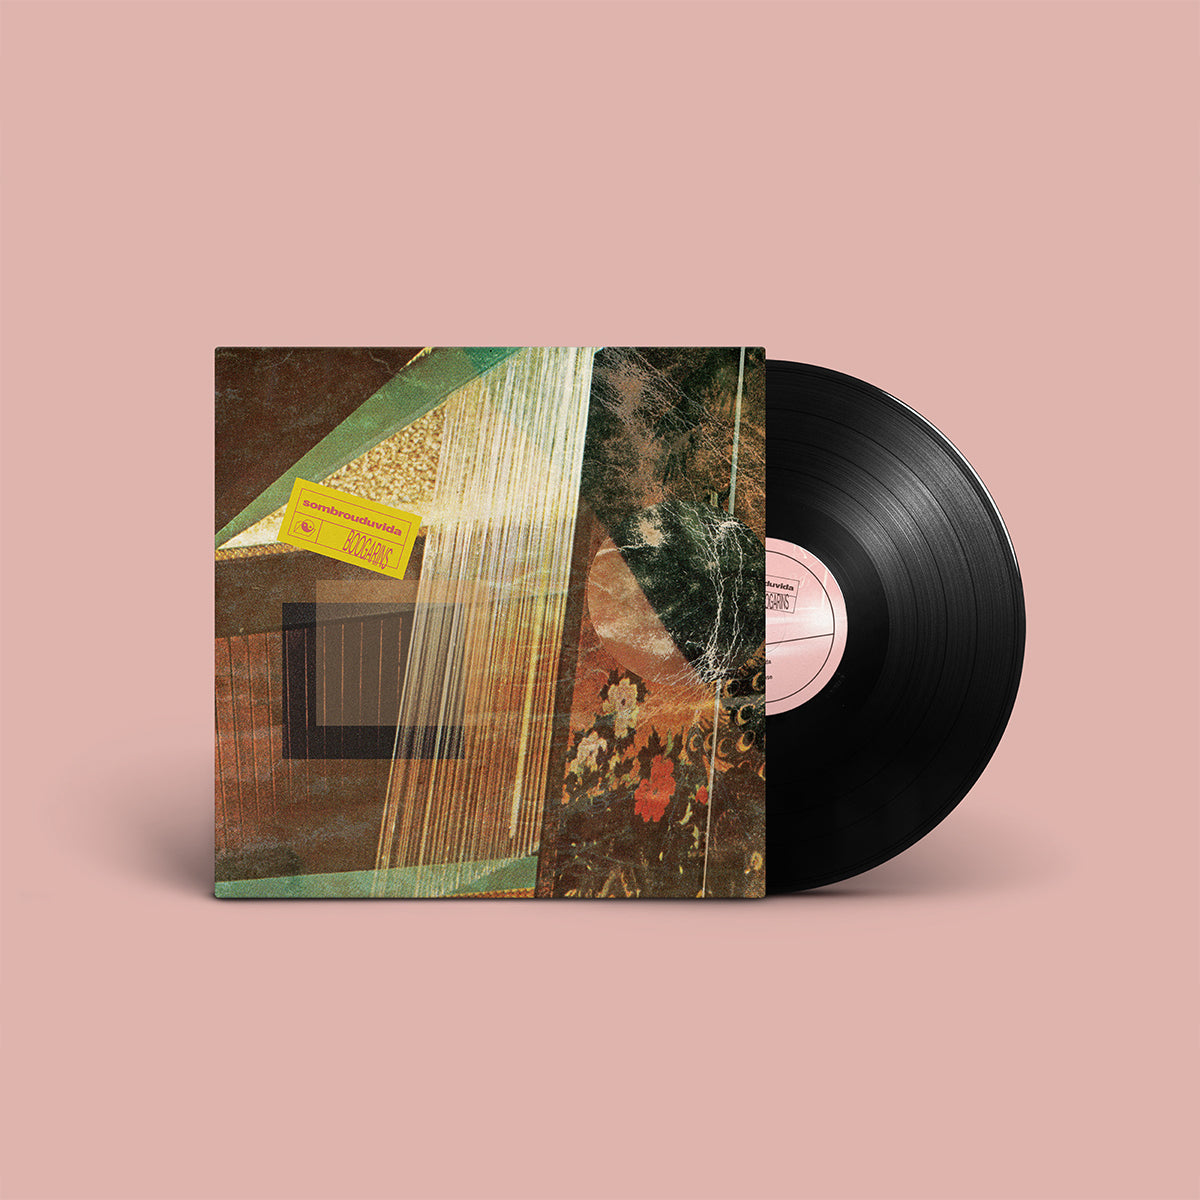 Boogarins - Sombrou Dúvida (LP w/Poster + Digital Download)